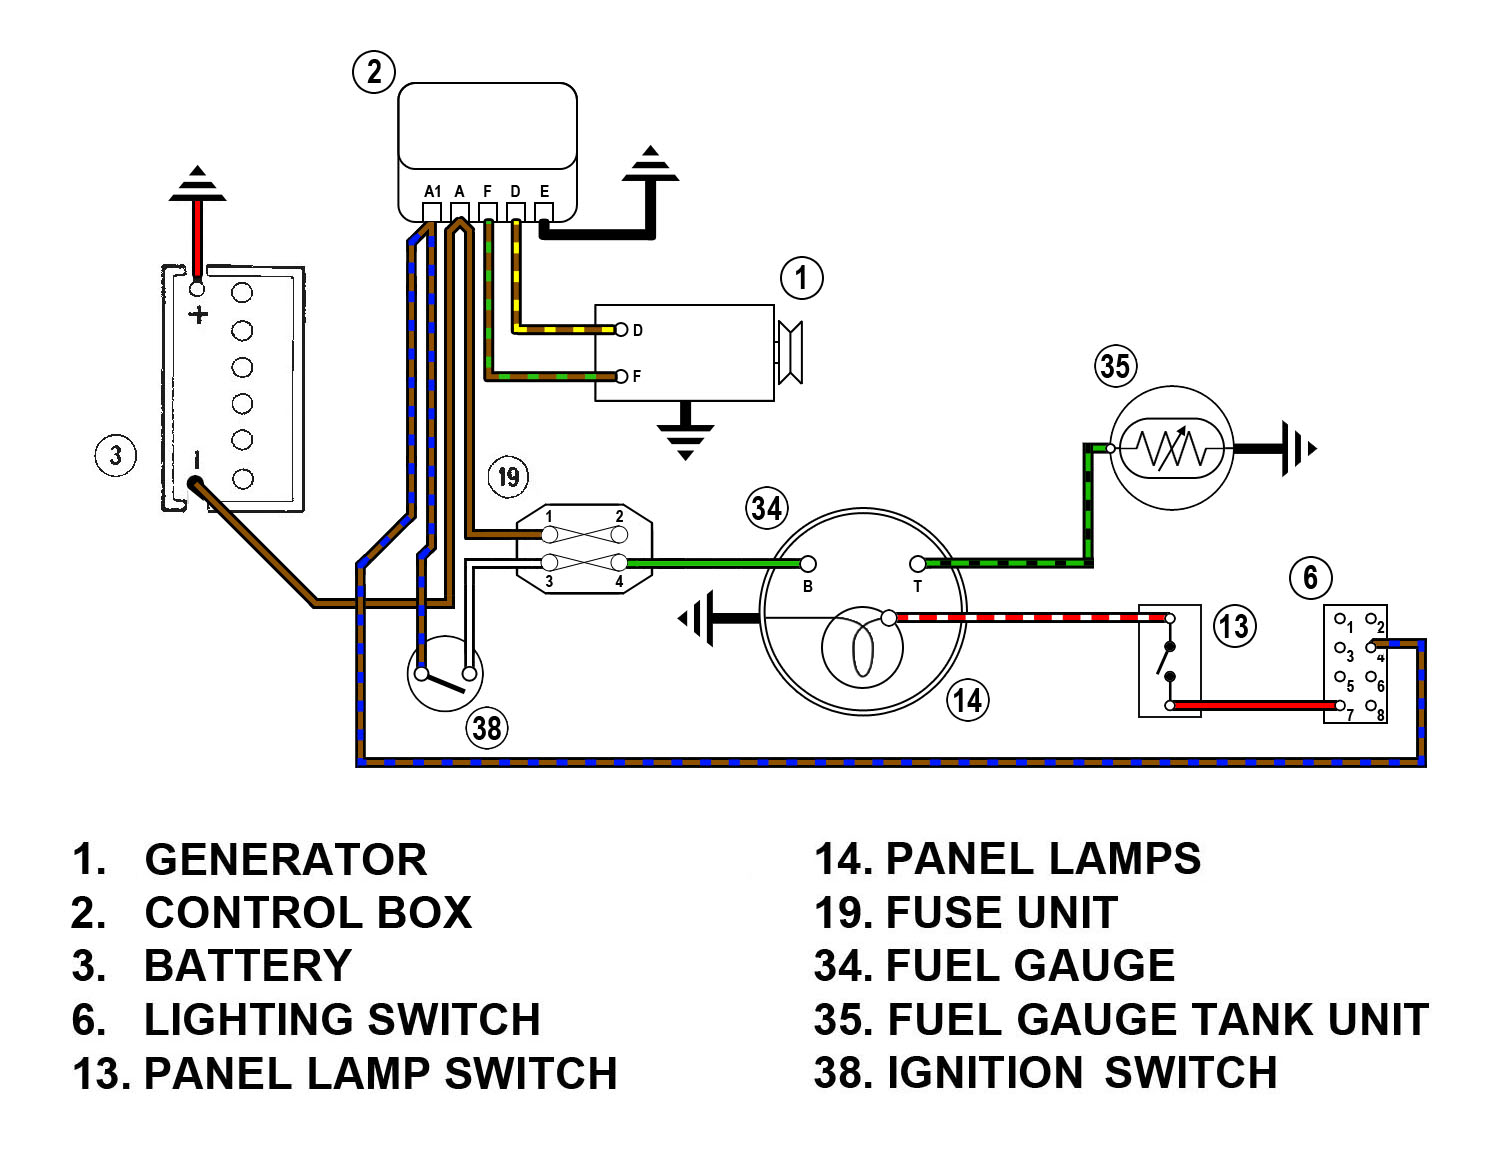 gas gauge wiring diagram gas wiring diagrams online fuel gauge wiring diagram